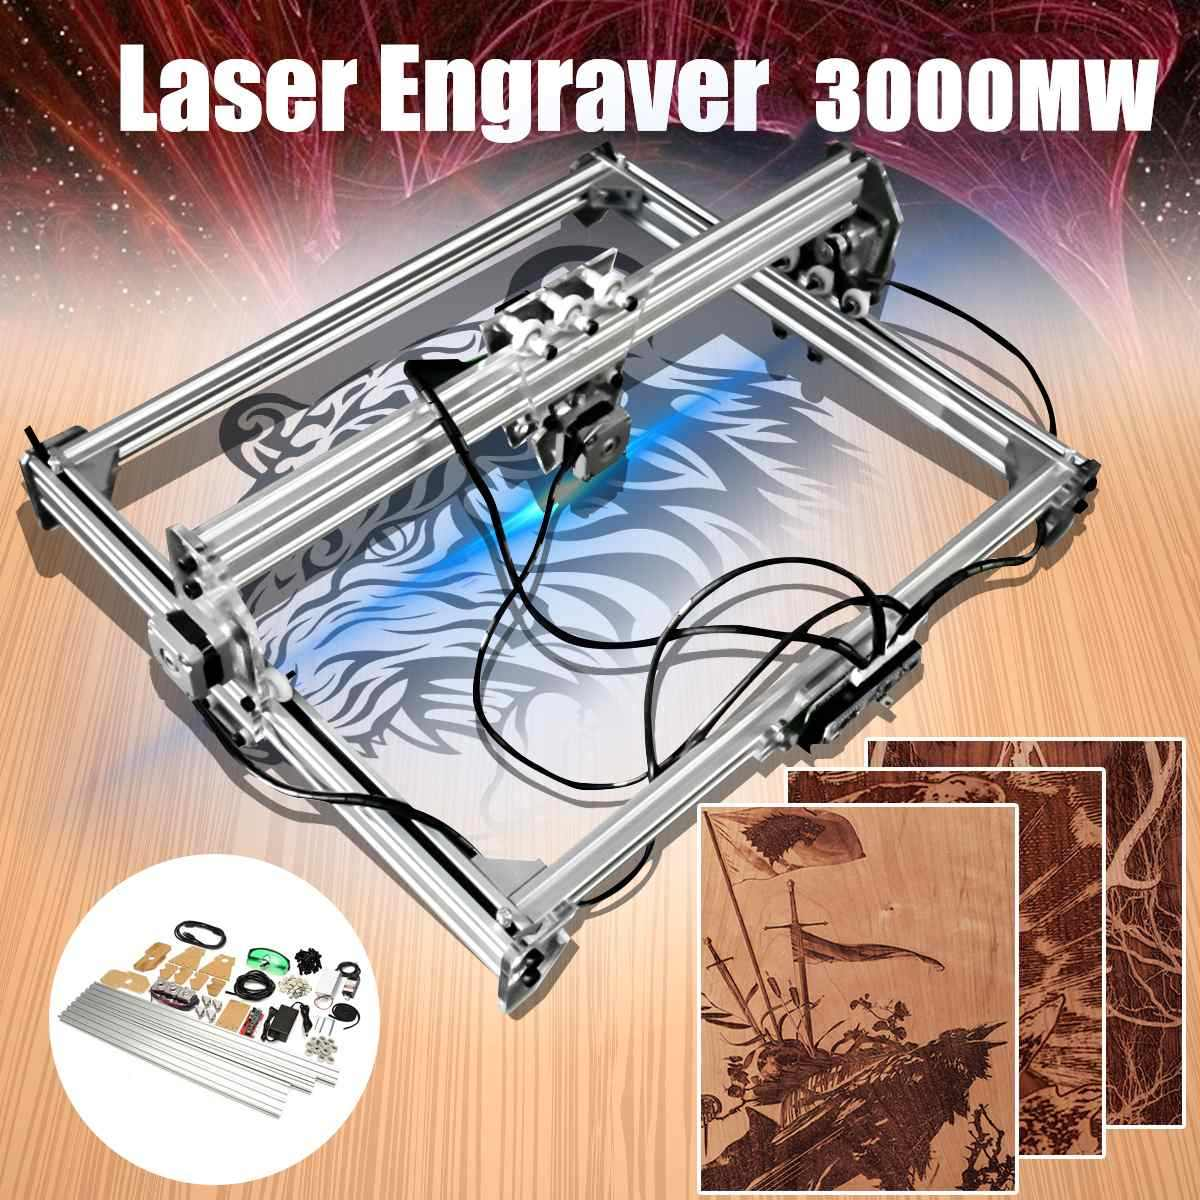 50*65cm Mini 3000MW Blue Laser Engraving Engraver Machine DC 12V DIY  Desktop Wood Cutter/Printer/Power Adjustable+ Laser